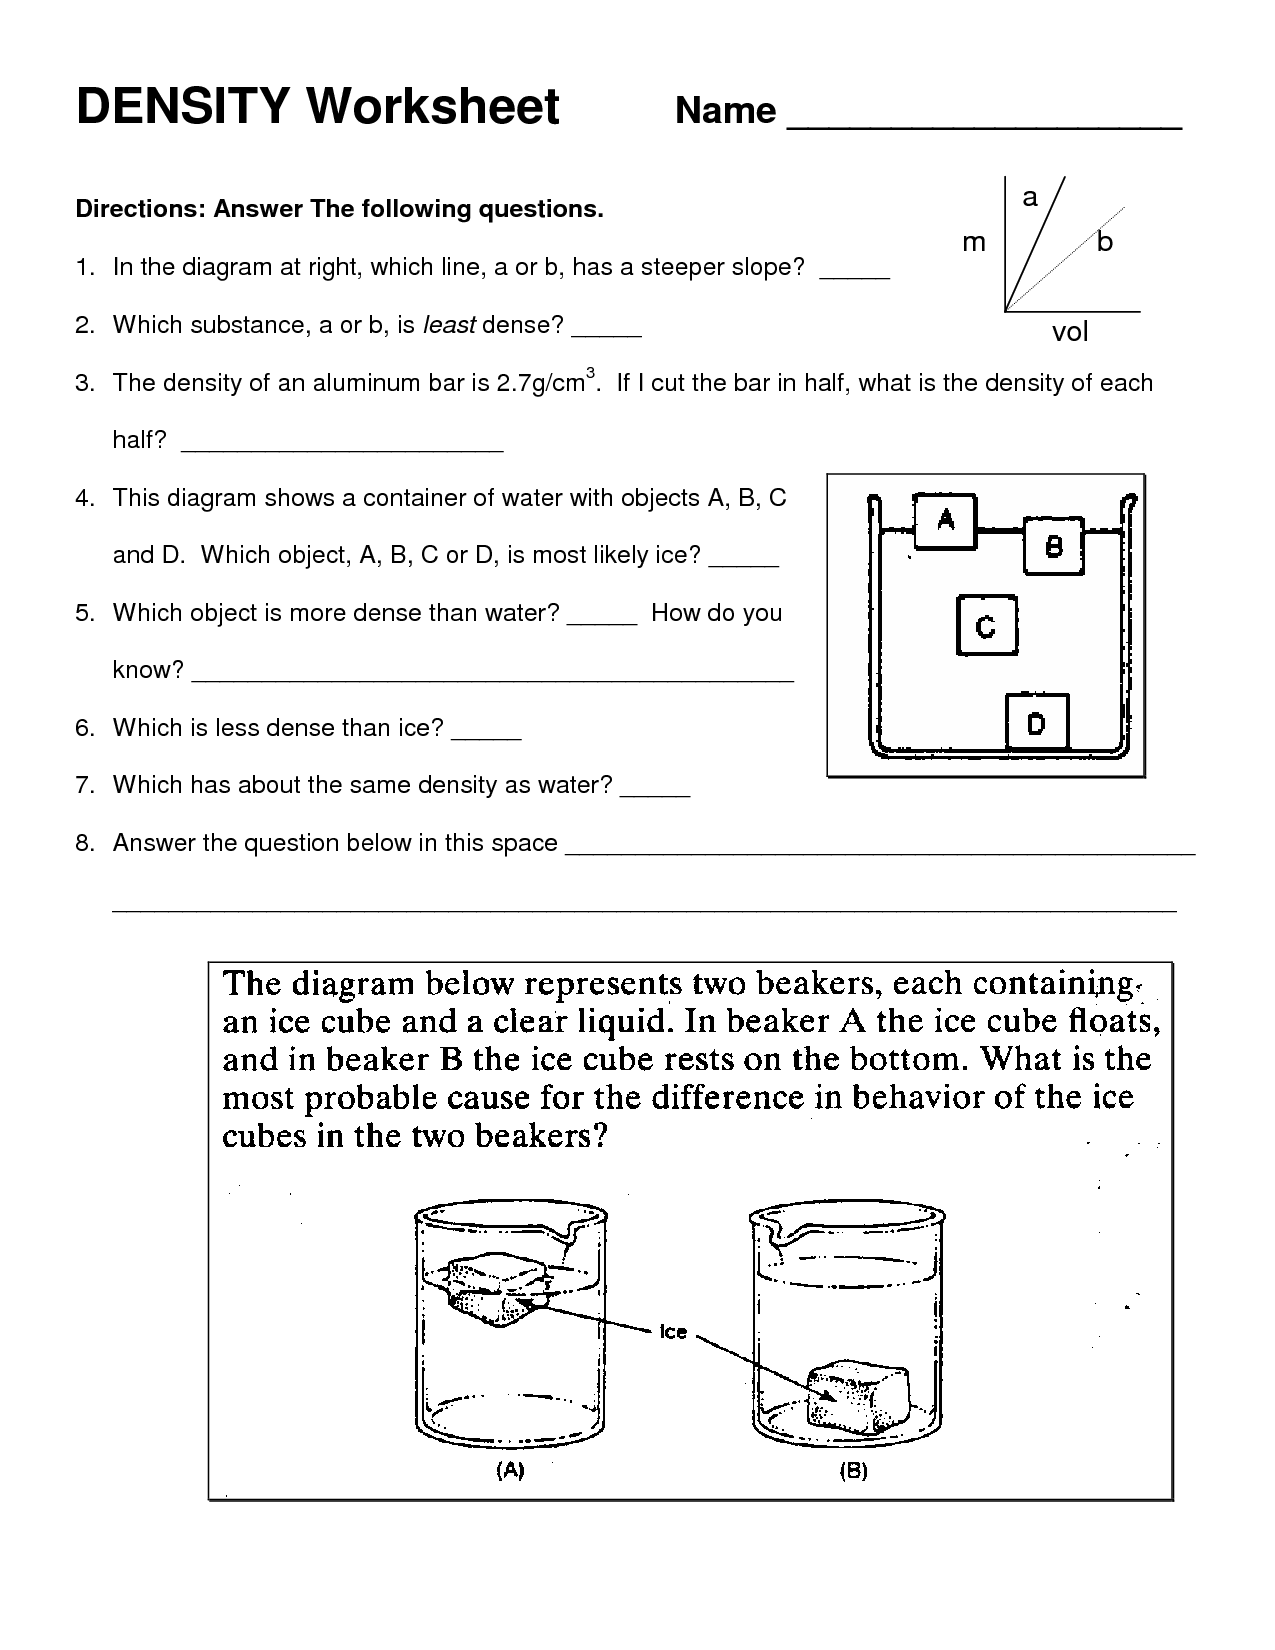 Science 8 Density Calculations Worksheet Answers